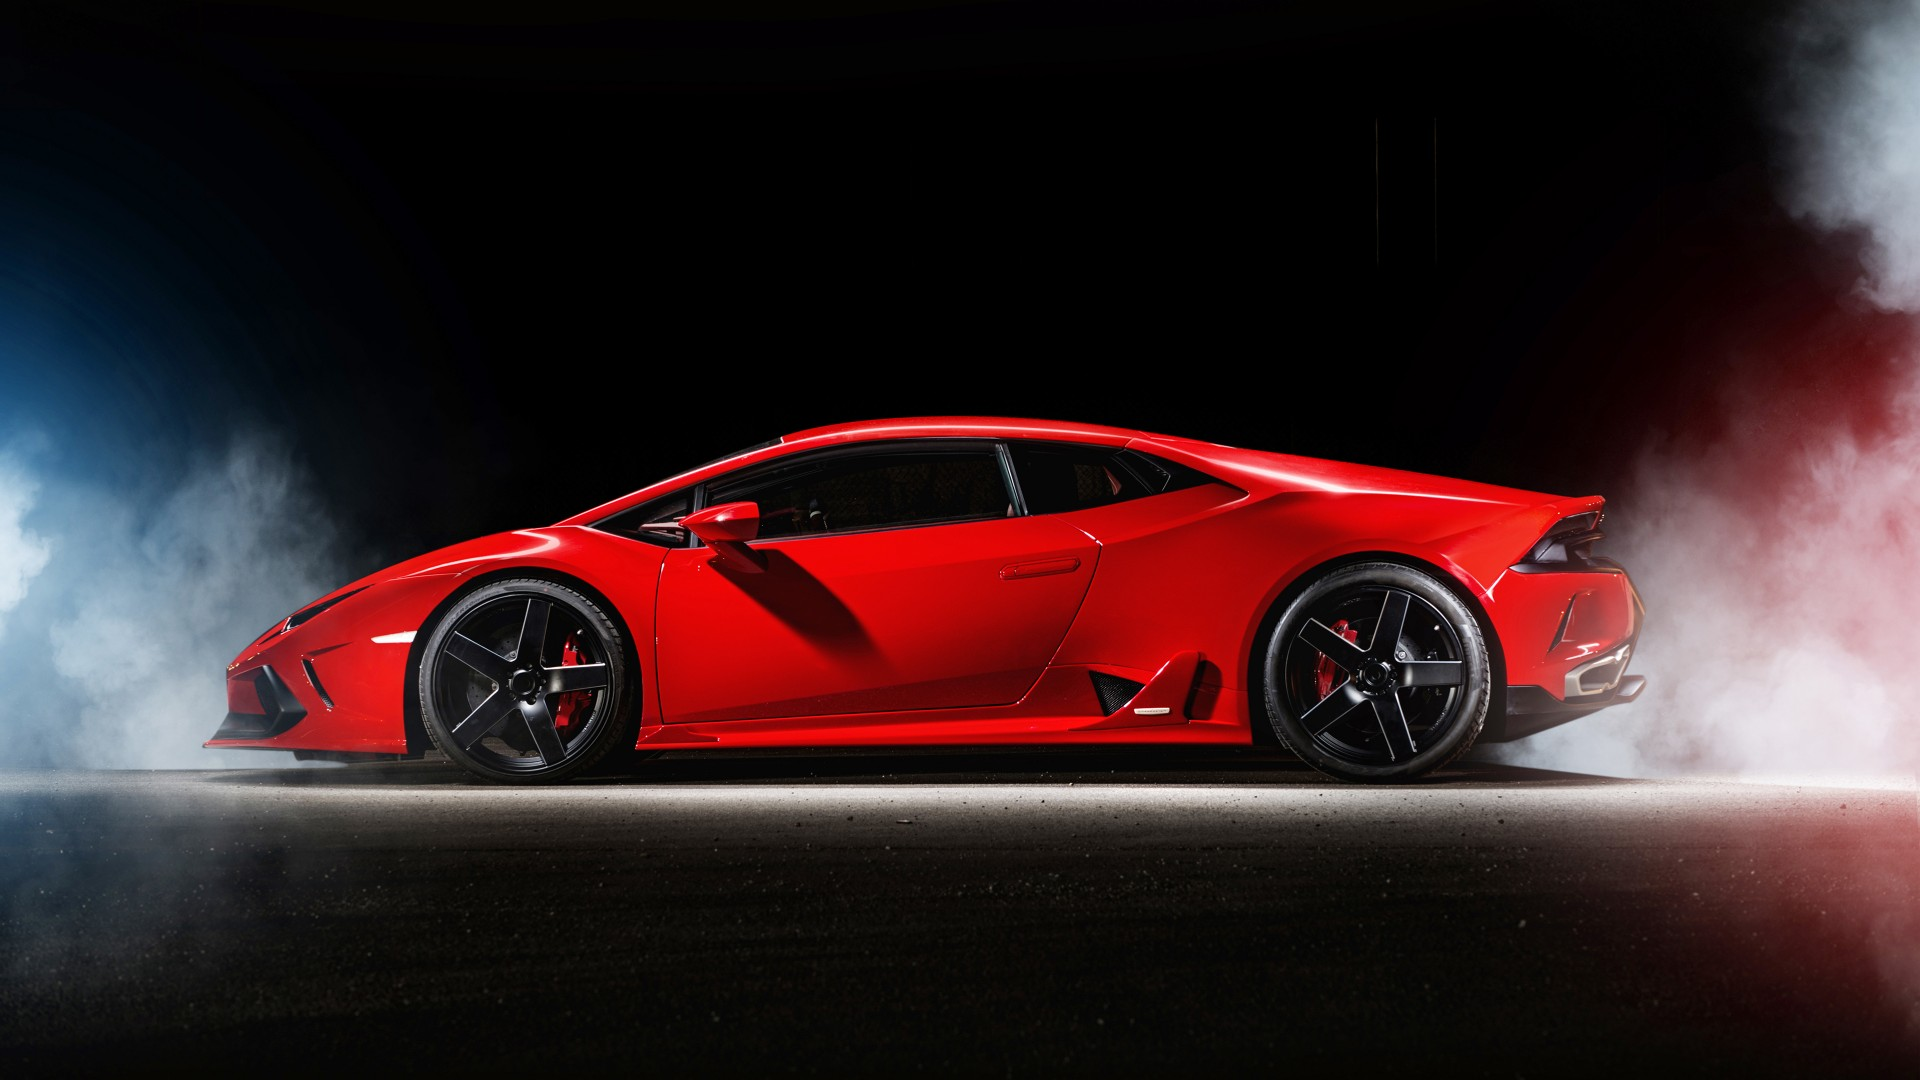 2015 ares design lamborghini huracan 3 wallpaper hd car - Wallpaper hd 4k car ...